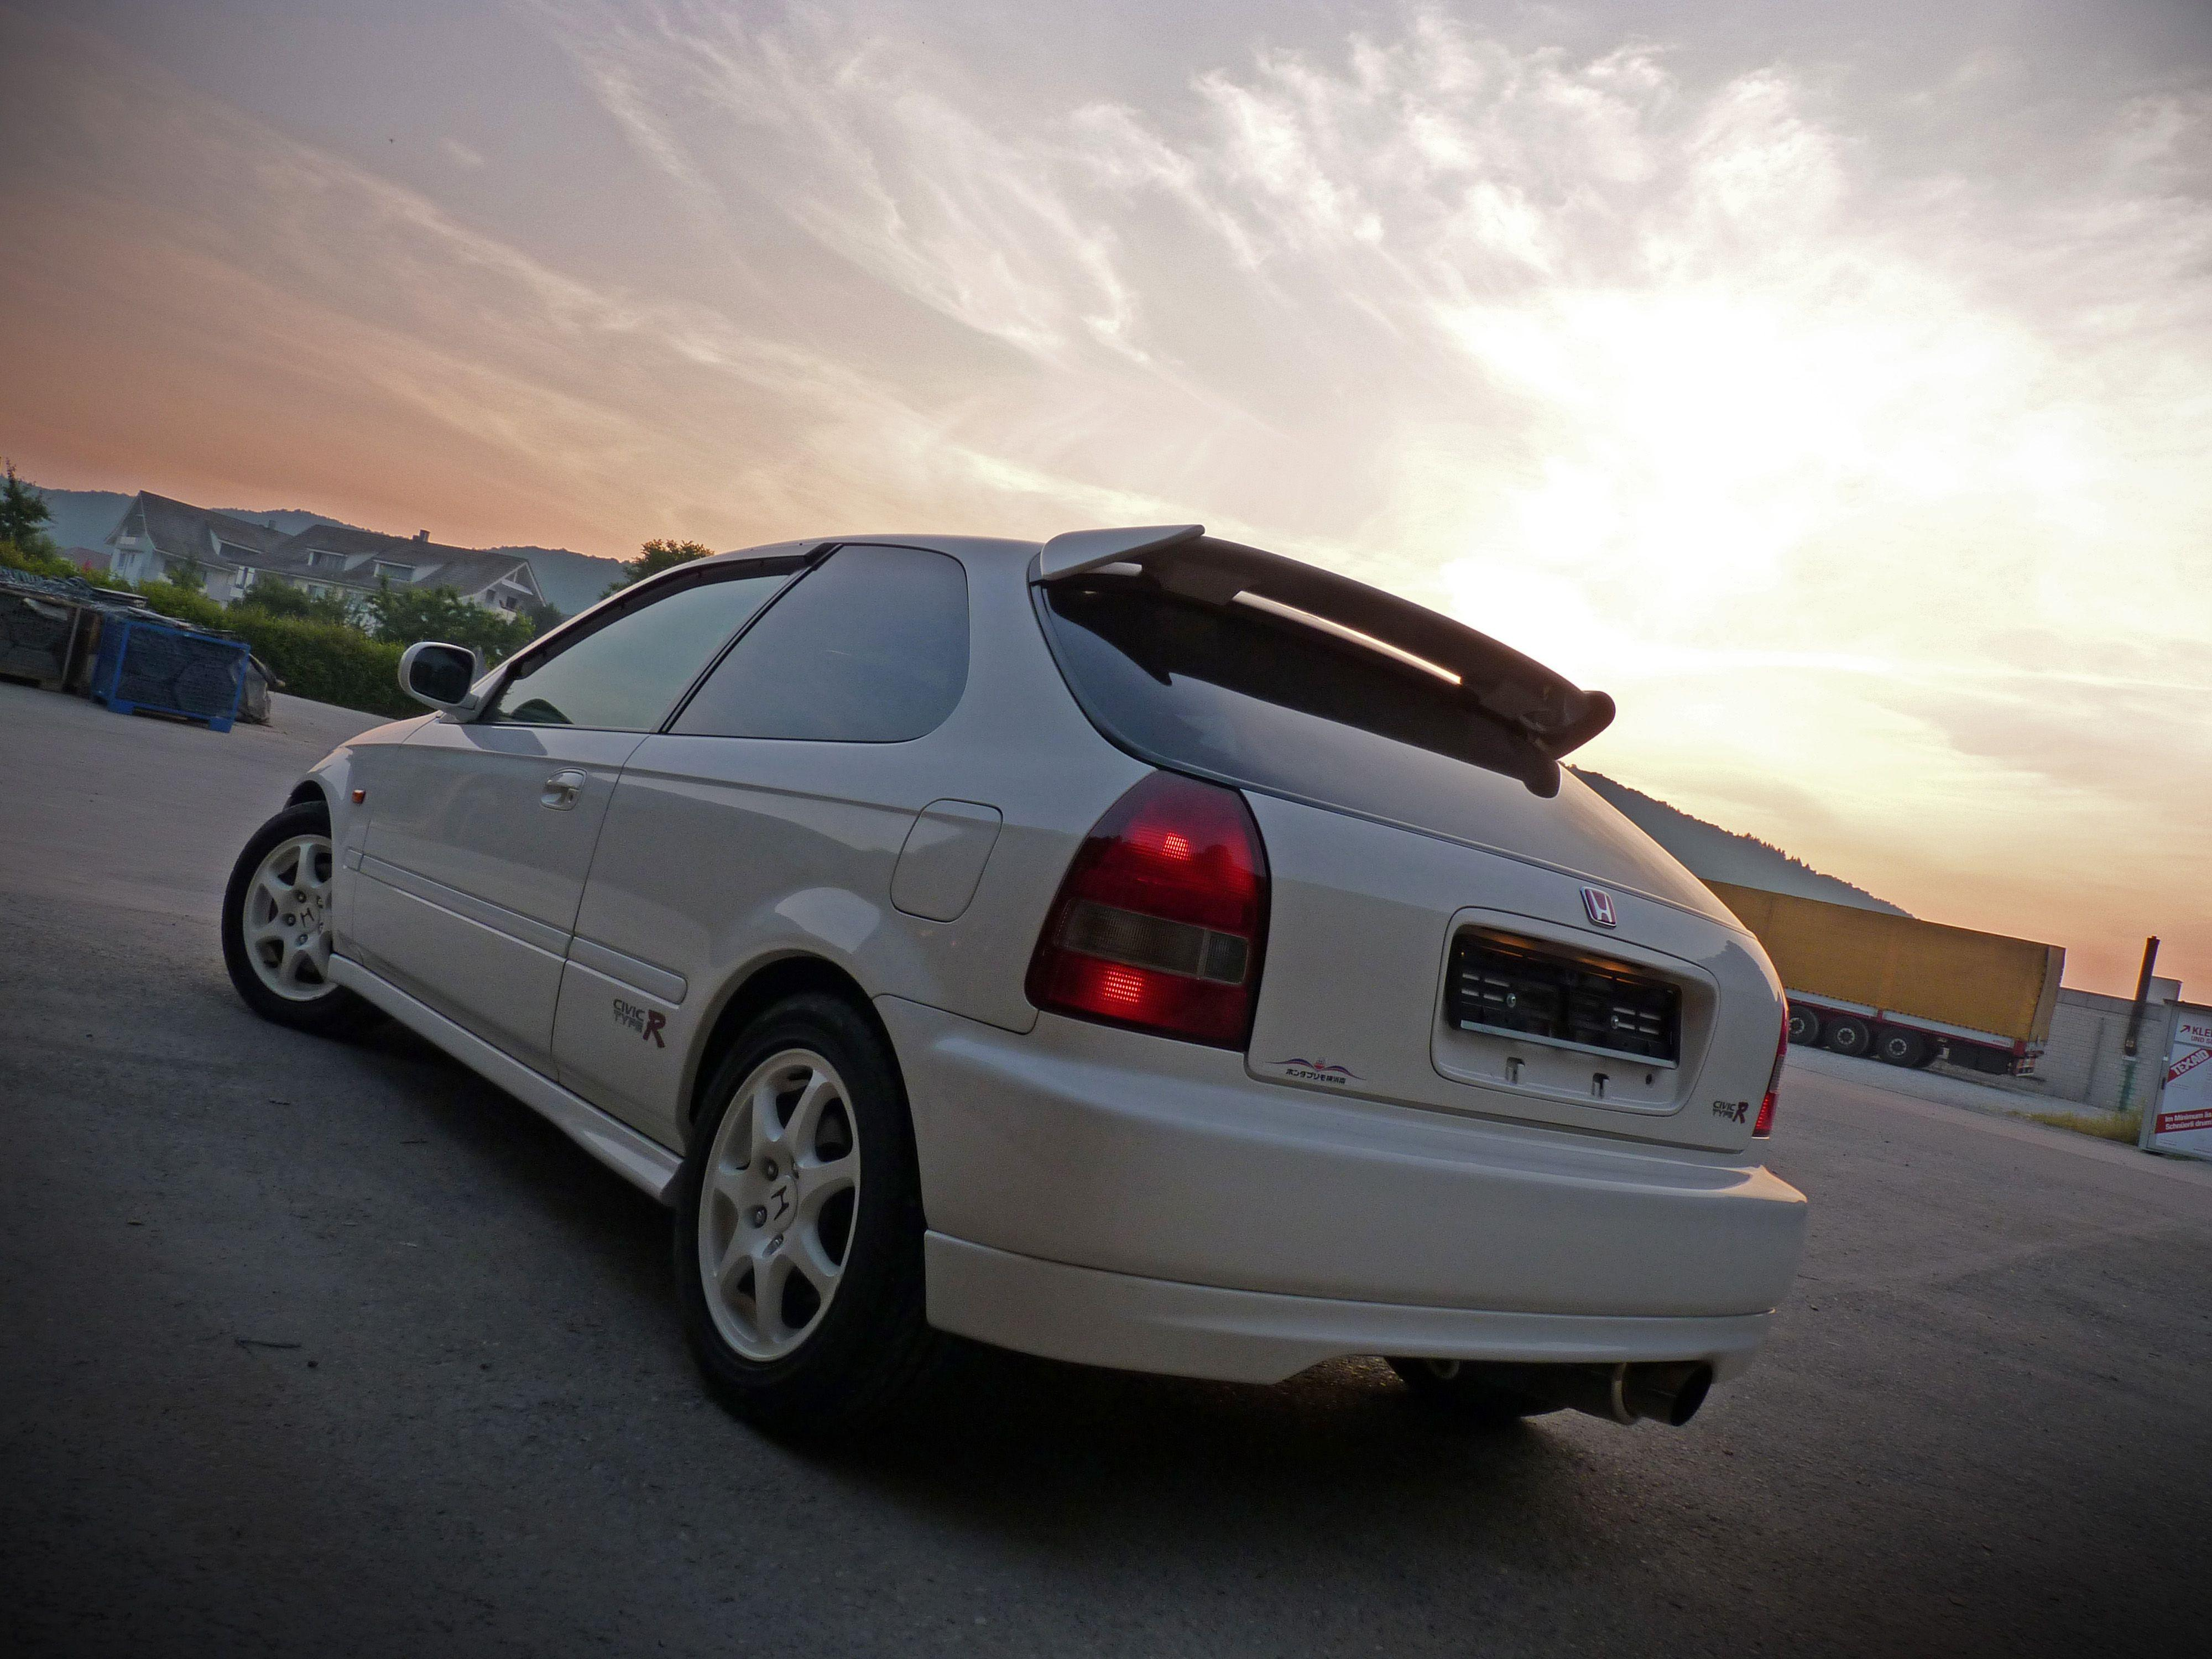 Best EK9 Wallpapers